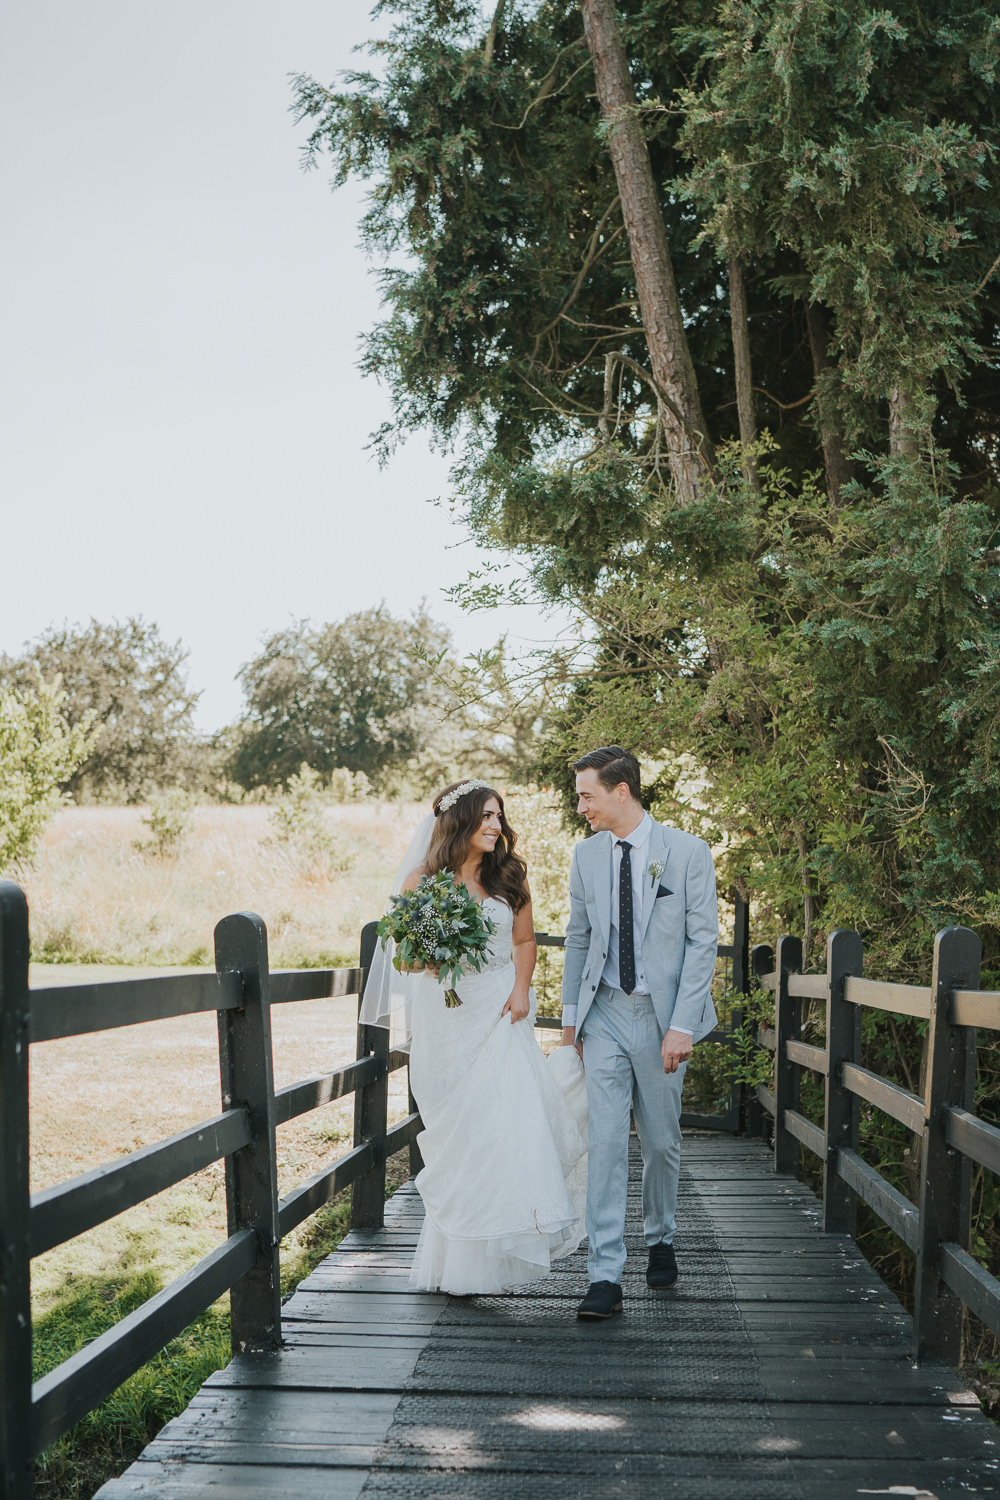 Intimate Outdoor Natural Relaxed Laid Back Summer Bride Groom Greenery Foliage Bouquet Gypsophila Crown | Prested Hall Wedding Grace Elizabeth Photography